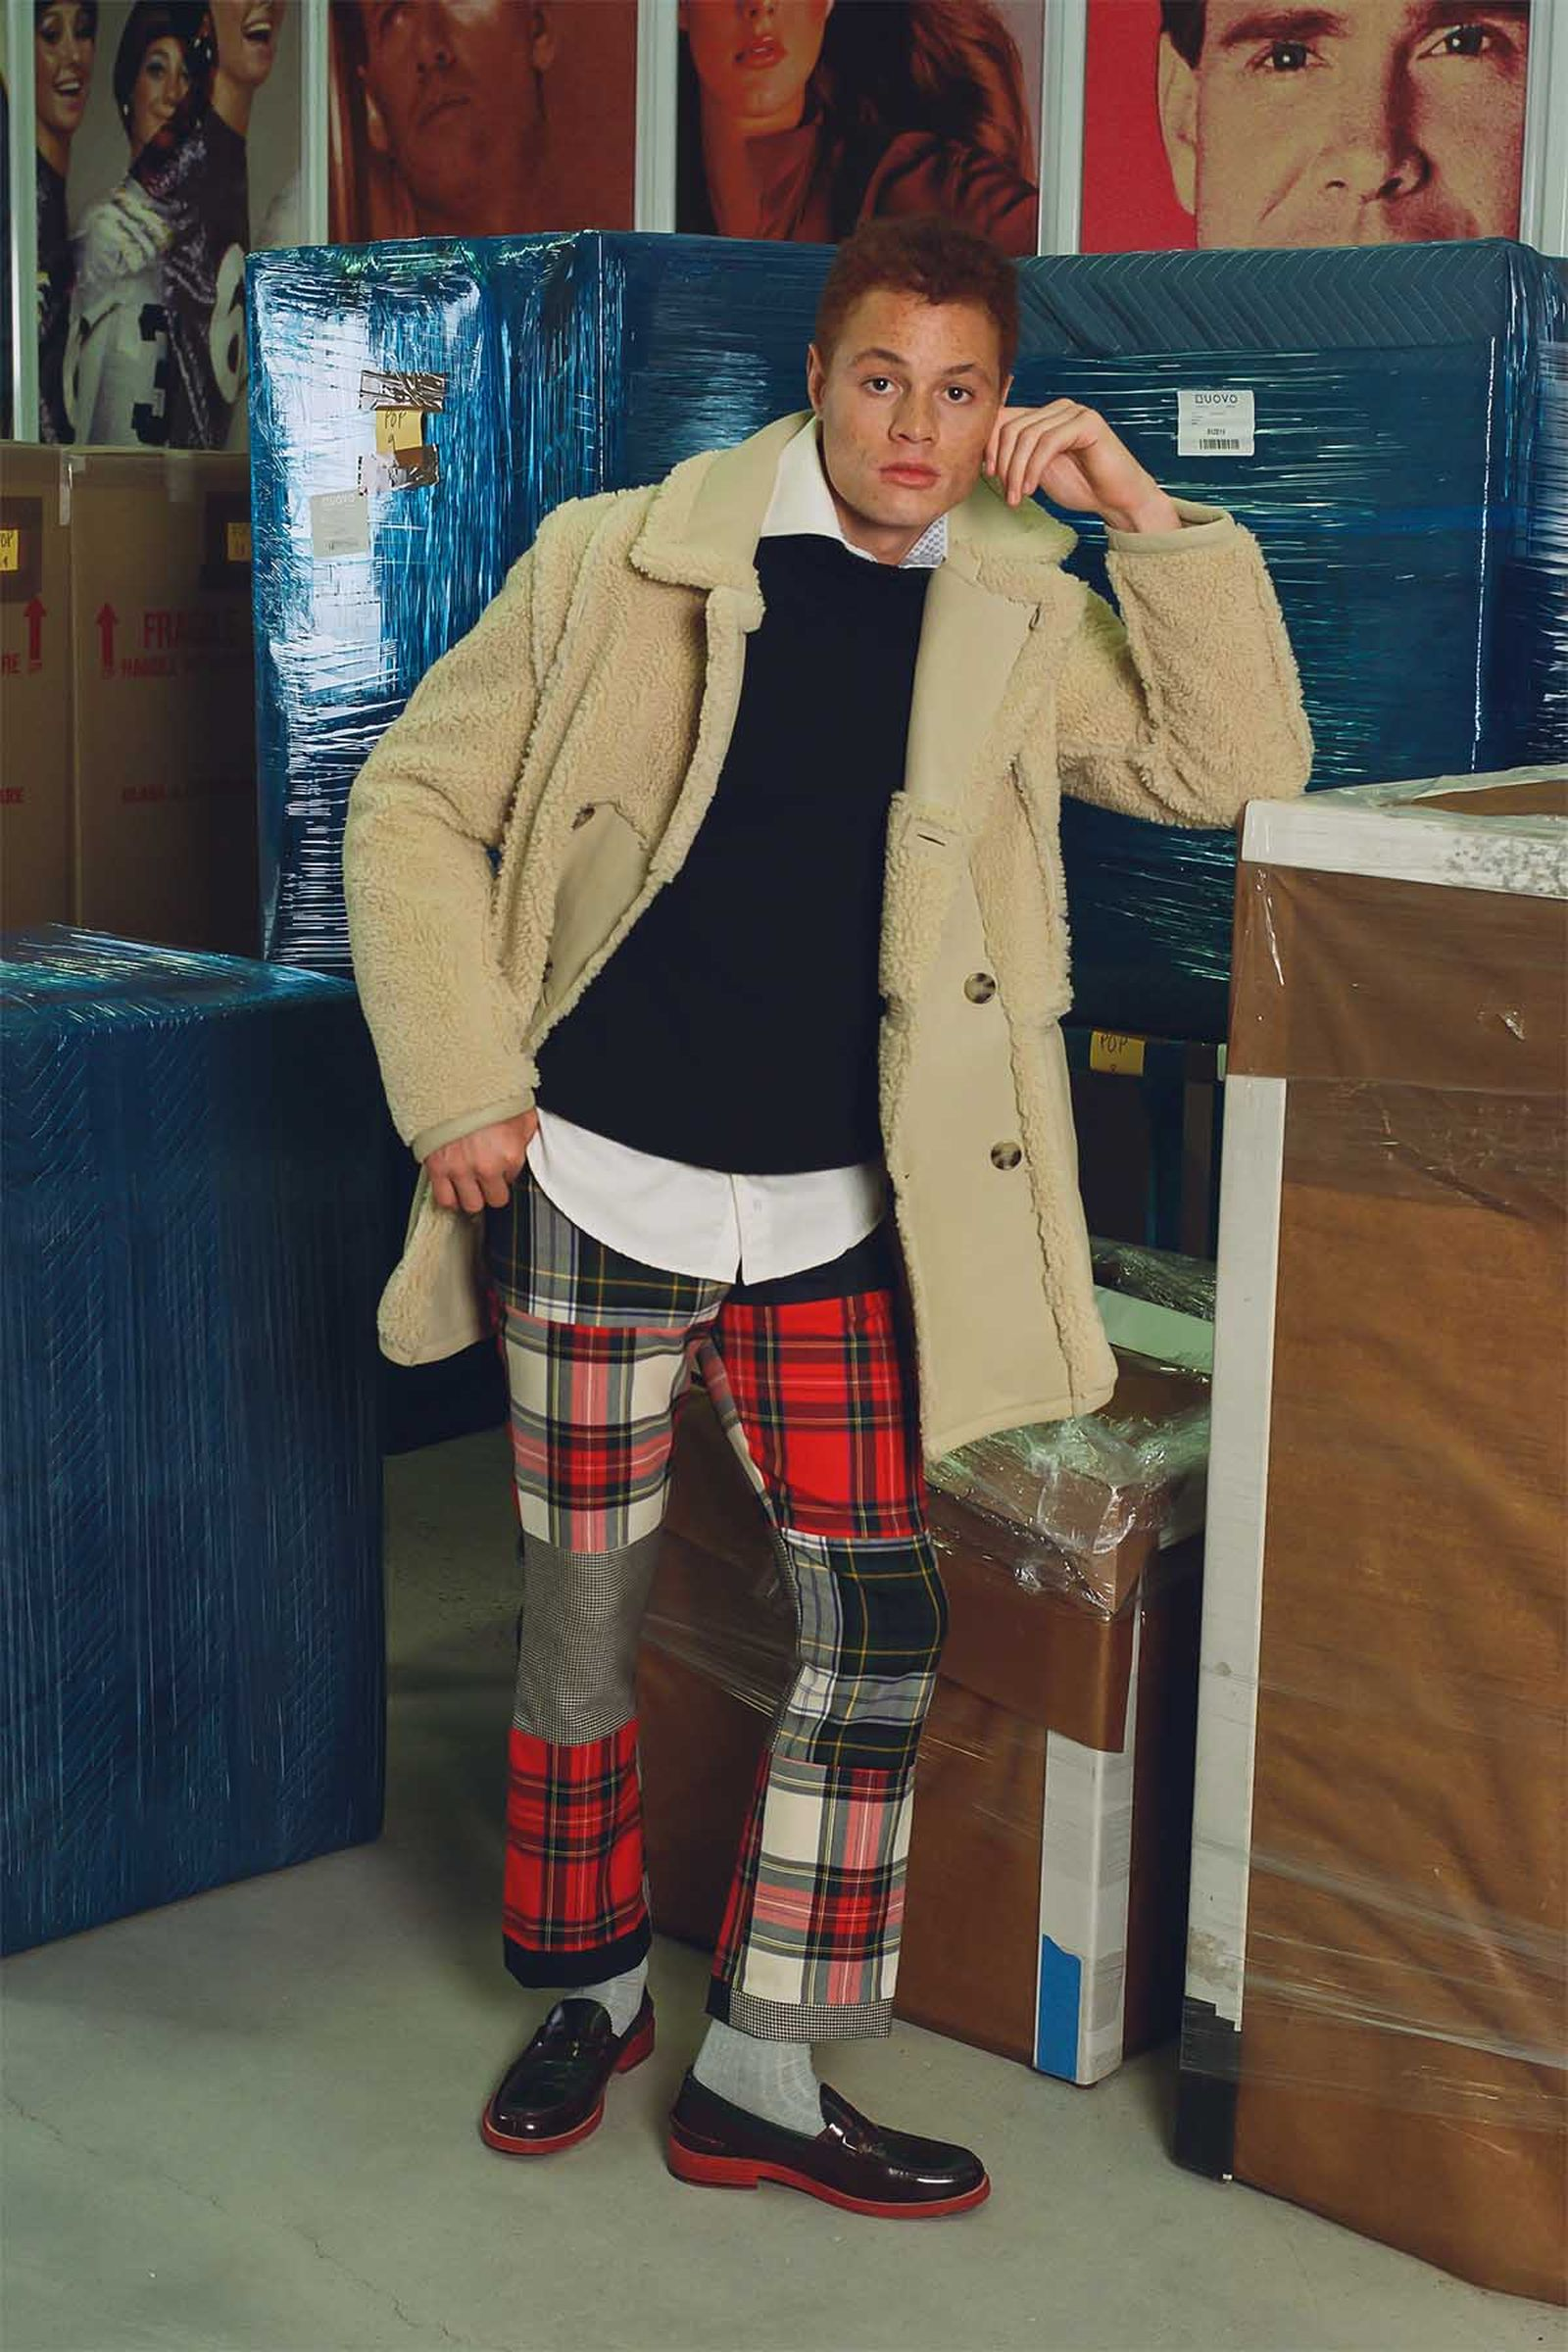 Hilfiger Collection Men's Reversible Shearling Coat (Fall 2020), Tommy Hilfiger Men's Shoal Sweater (Holiday 2003), Tommy Hilfiger Collection Men's Cotton Pique Shirt (Fall 2008), Tommy Hilfiger Collection Men's Flare Leg Tartan & Houndstooth Patchwork Pant (Fall 2000), Tommy Hilfiger Collection Men's Loafers (Spring 2012)